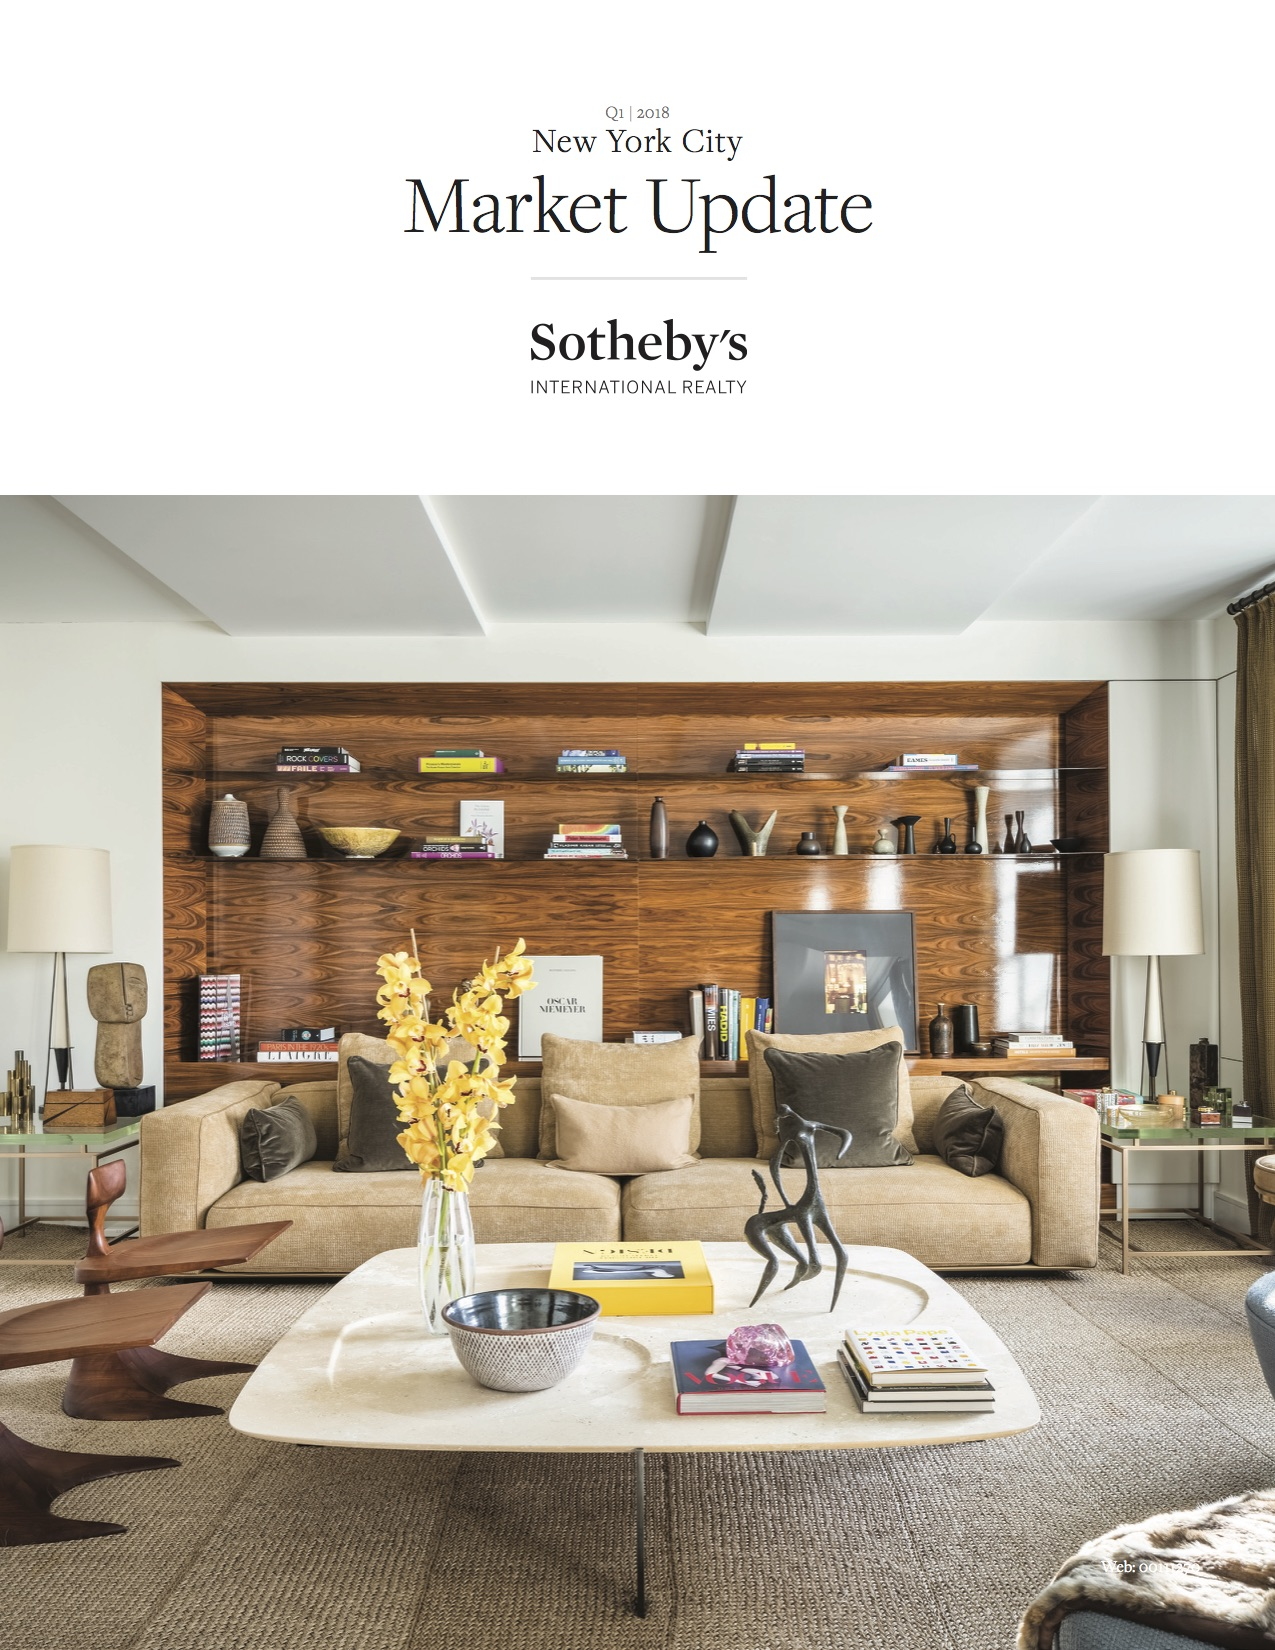 Sotheby's Homes NYC Market Report Q1 2018_1.jpg